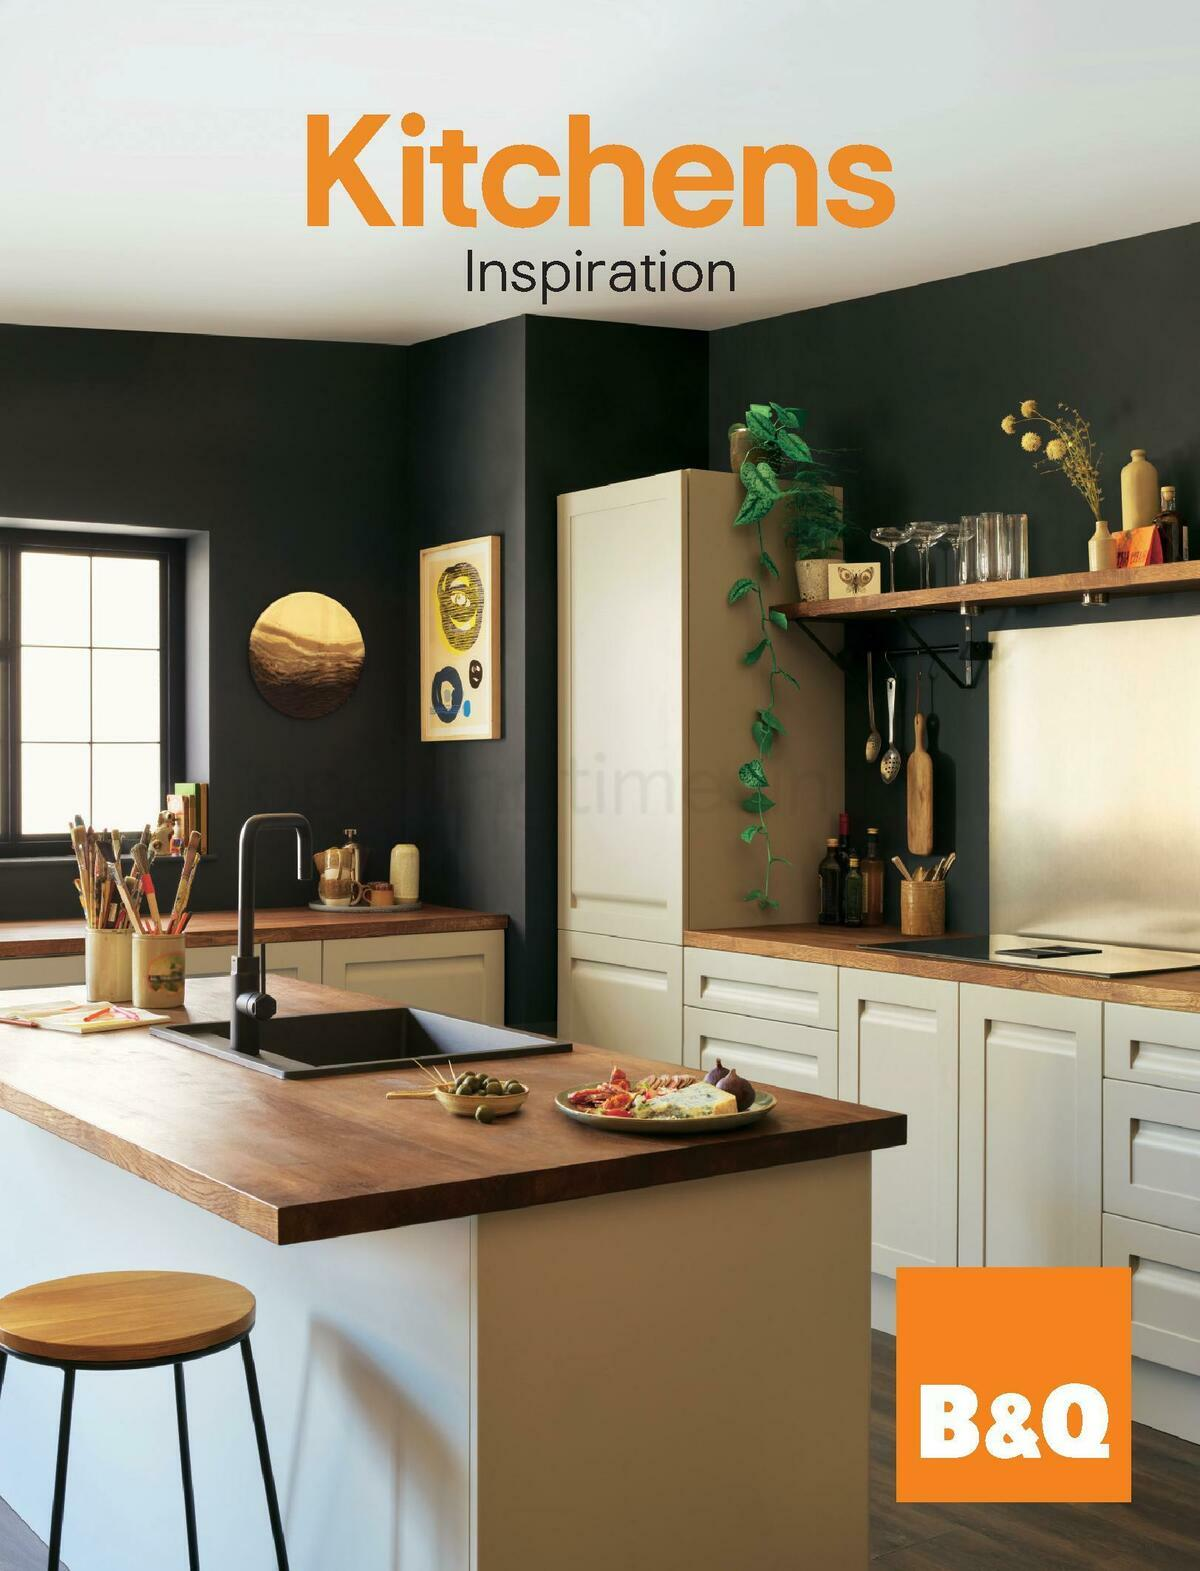 B&Q Kitchens Inspiration Offers from September 1